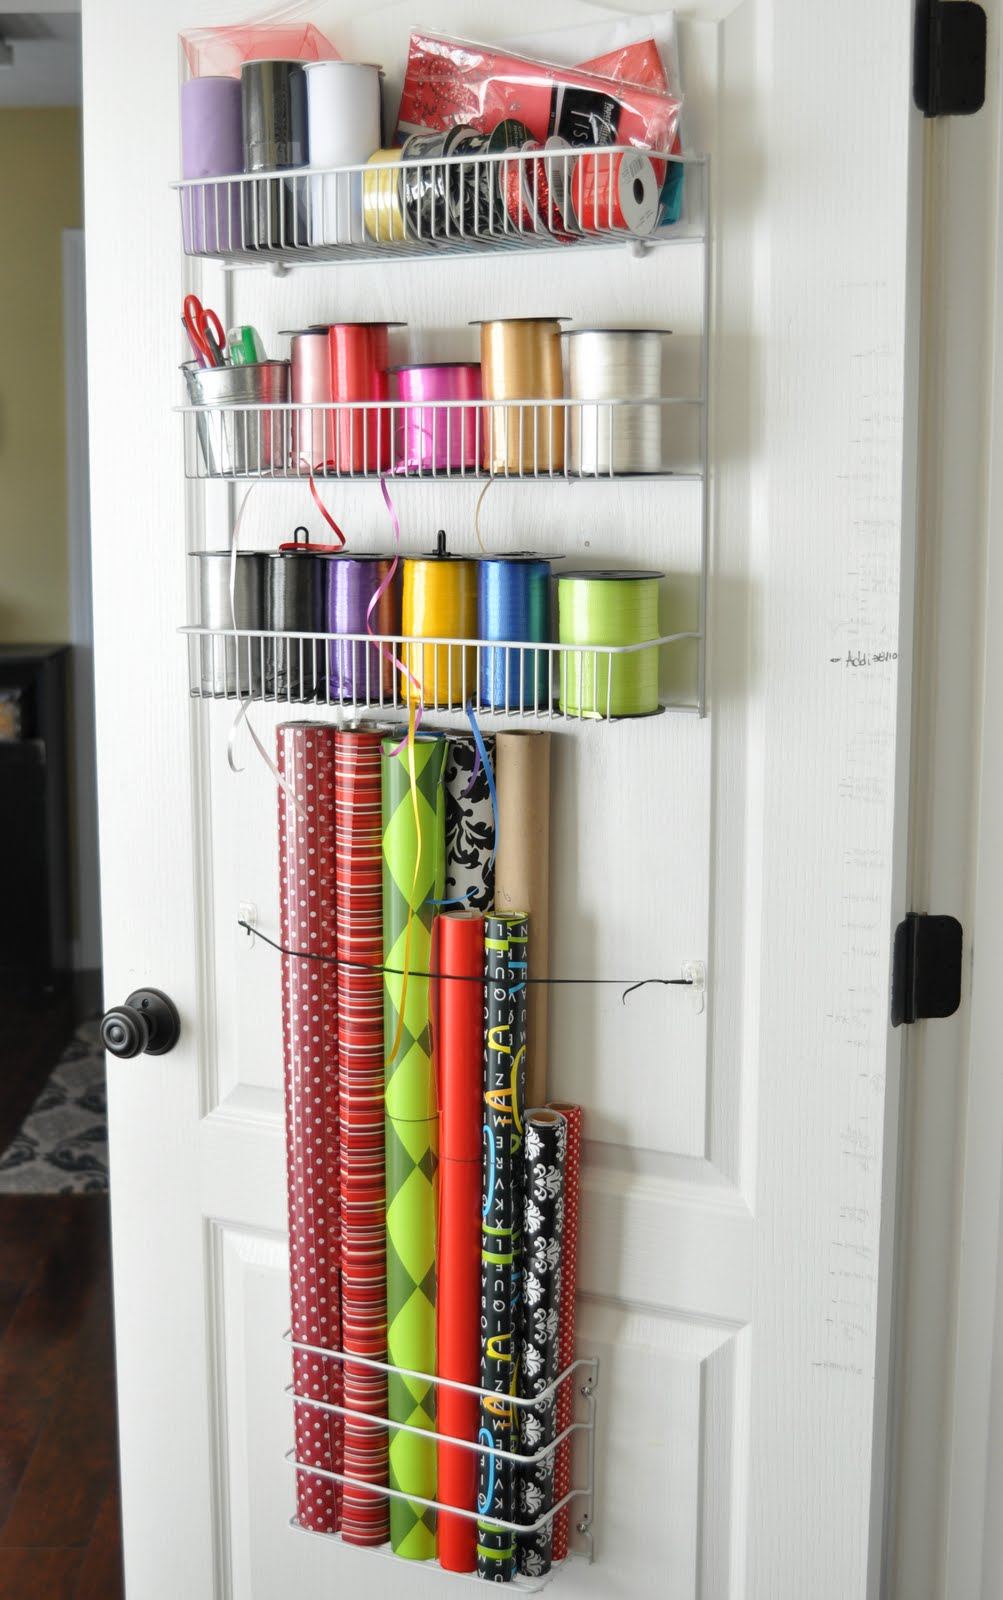 Wrapping Paper Storage Solutions That Keep The Clutter Under Control